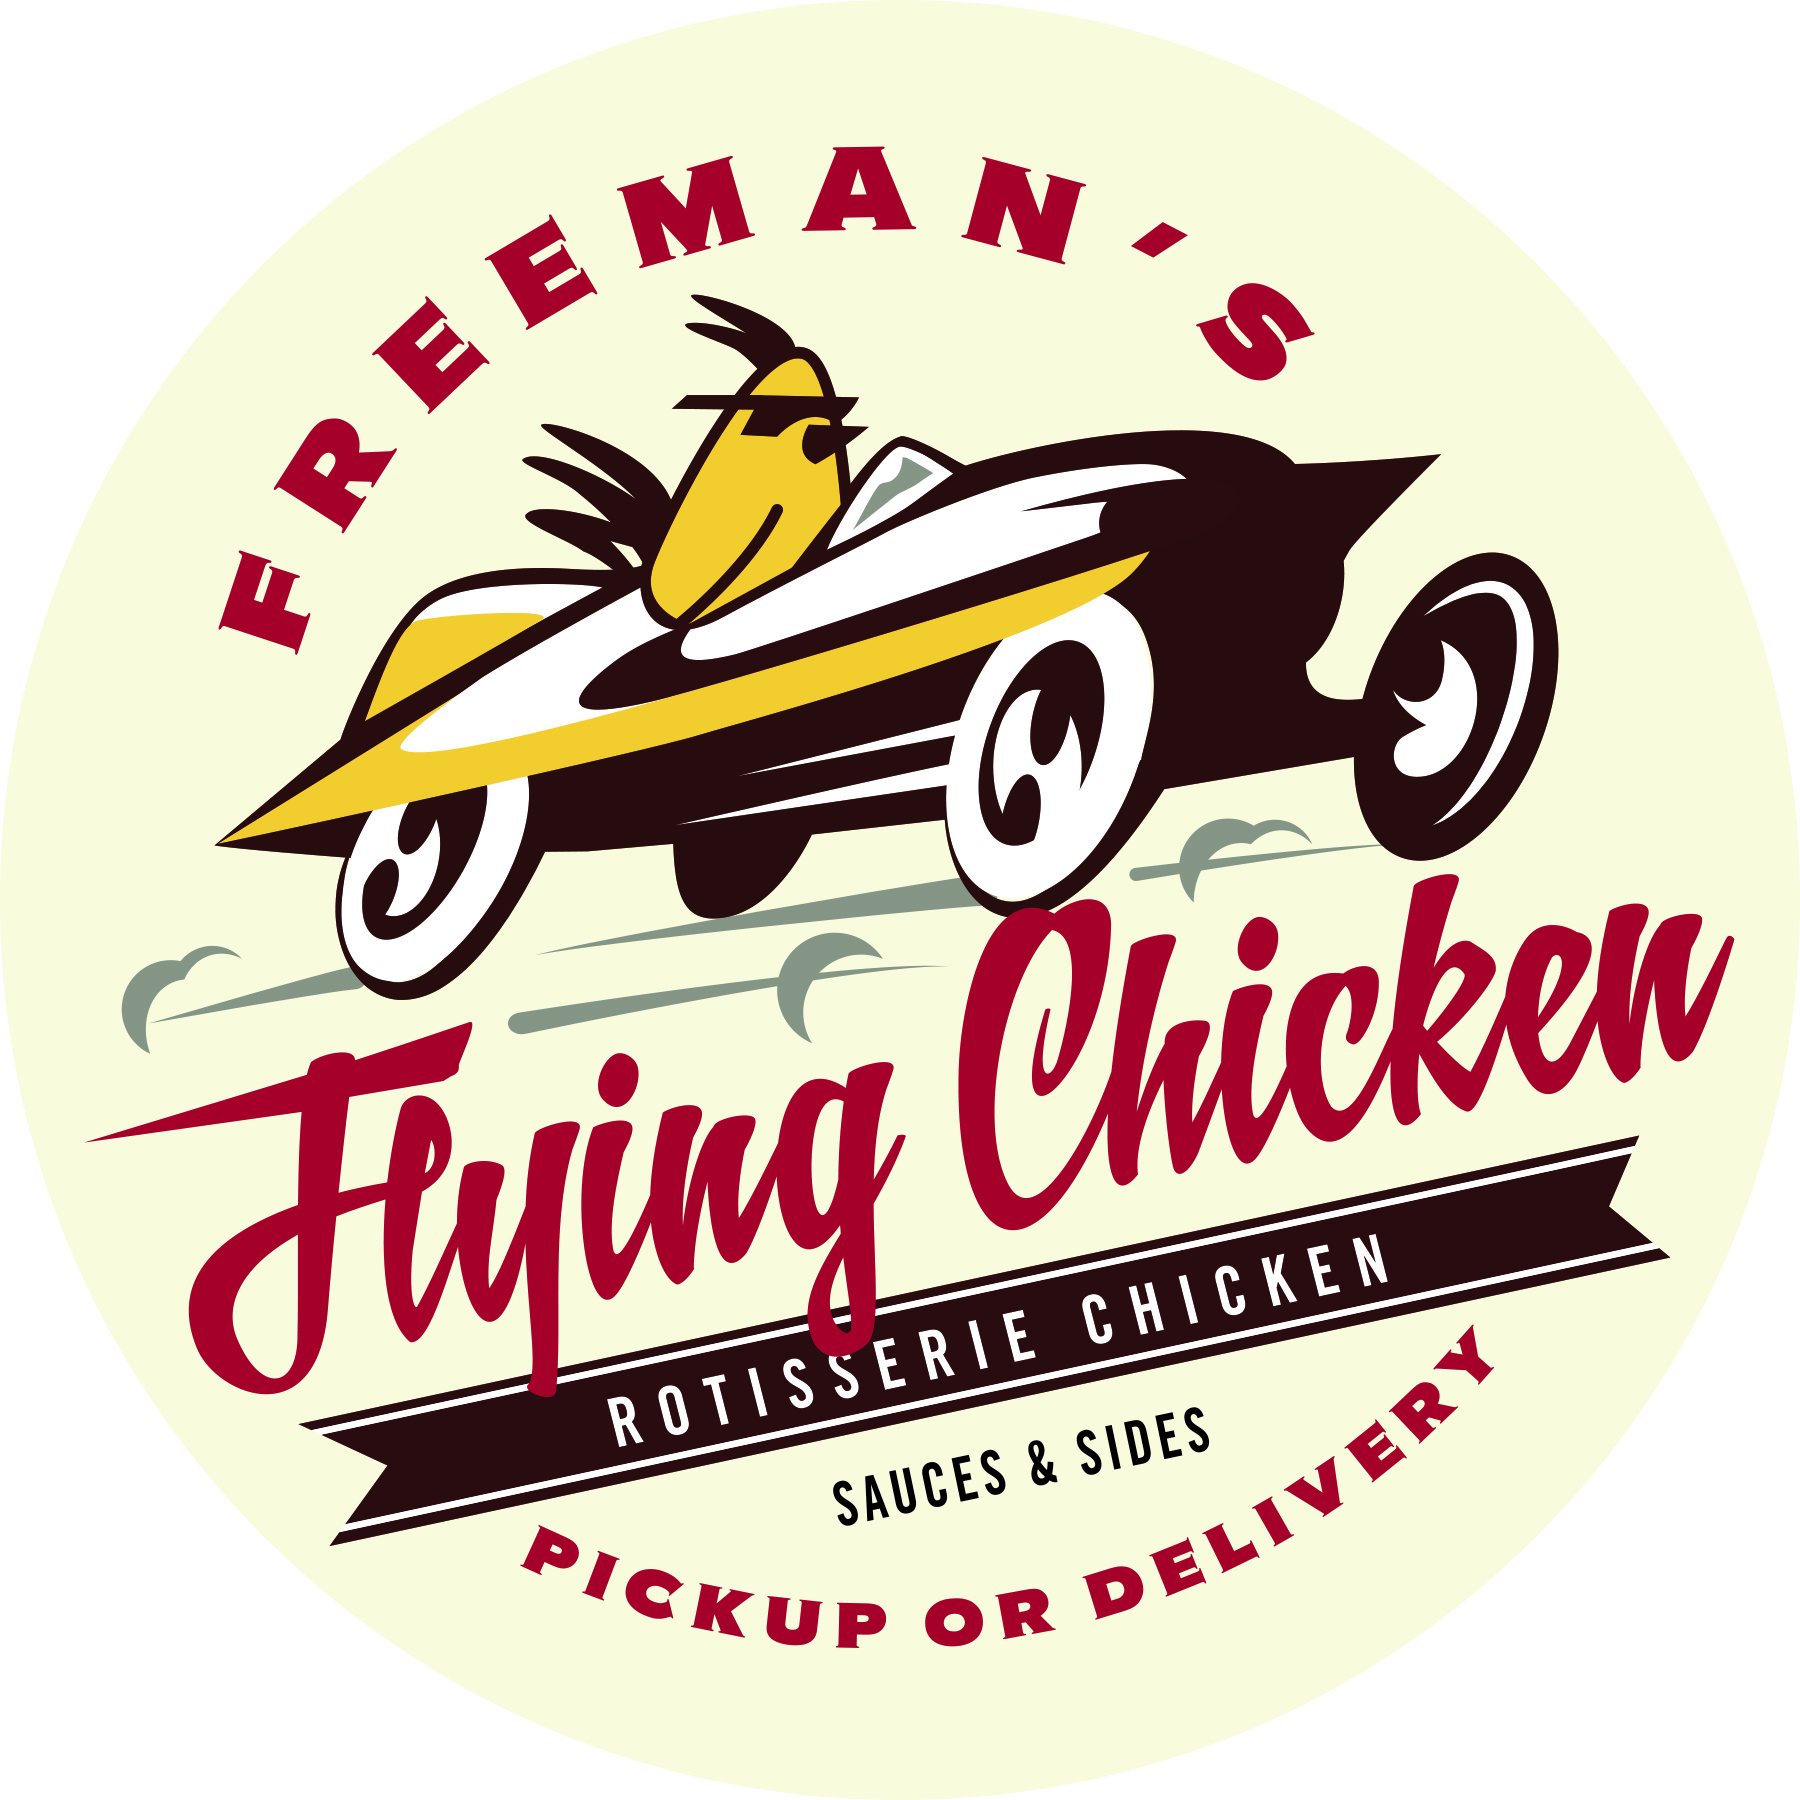 Freeman's Flying Chicken logo design